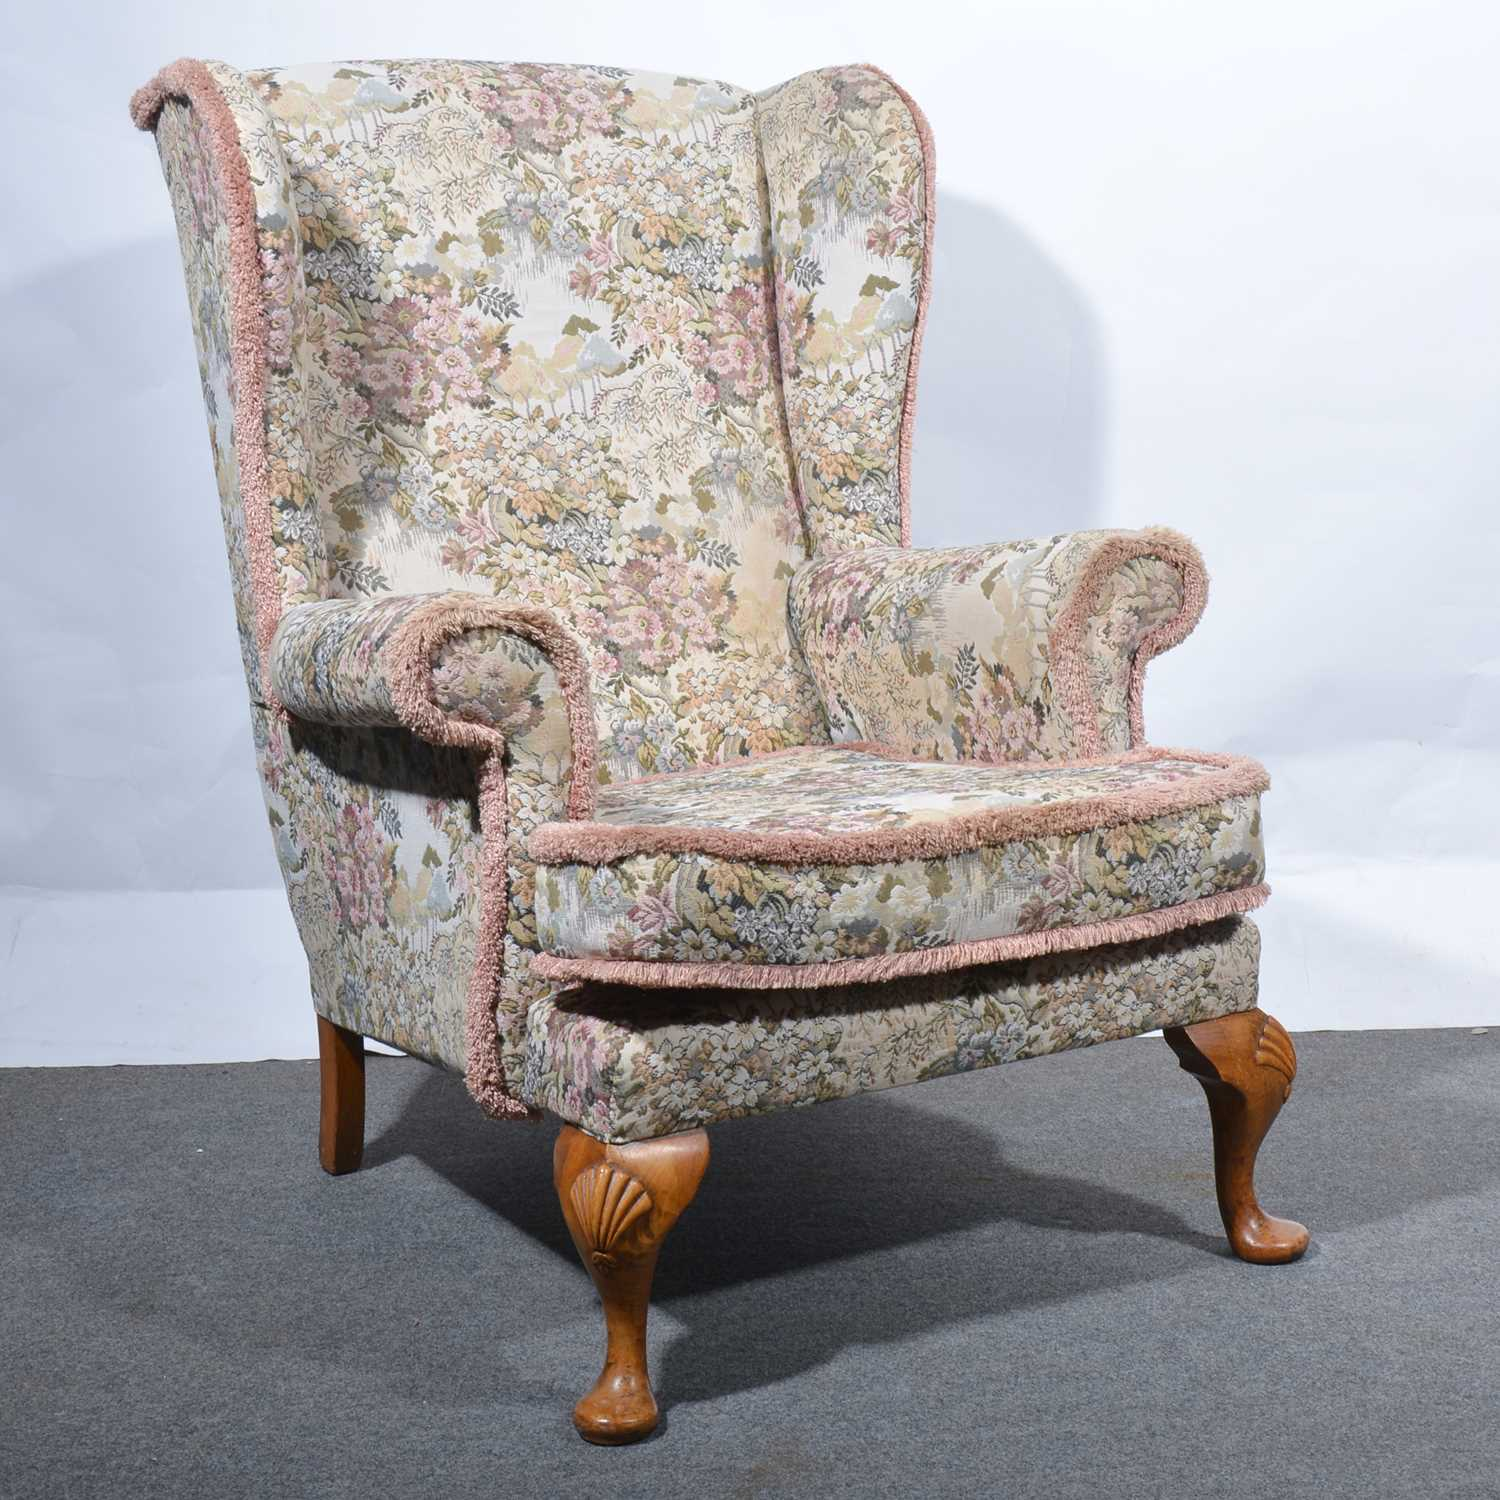 Lot 32 - A Georgian style wing-back chair.